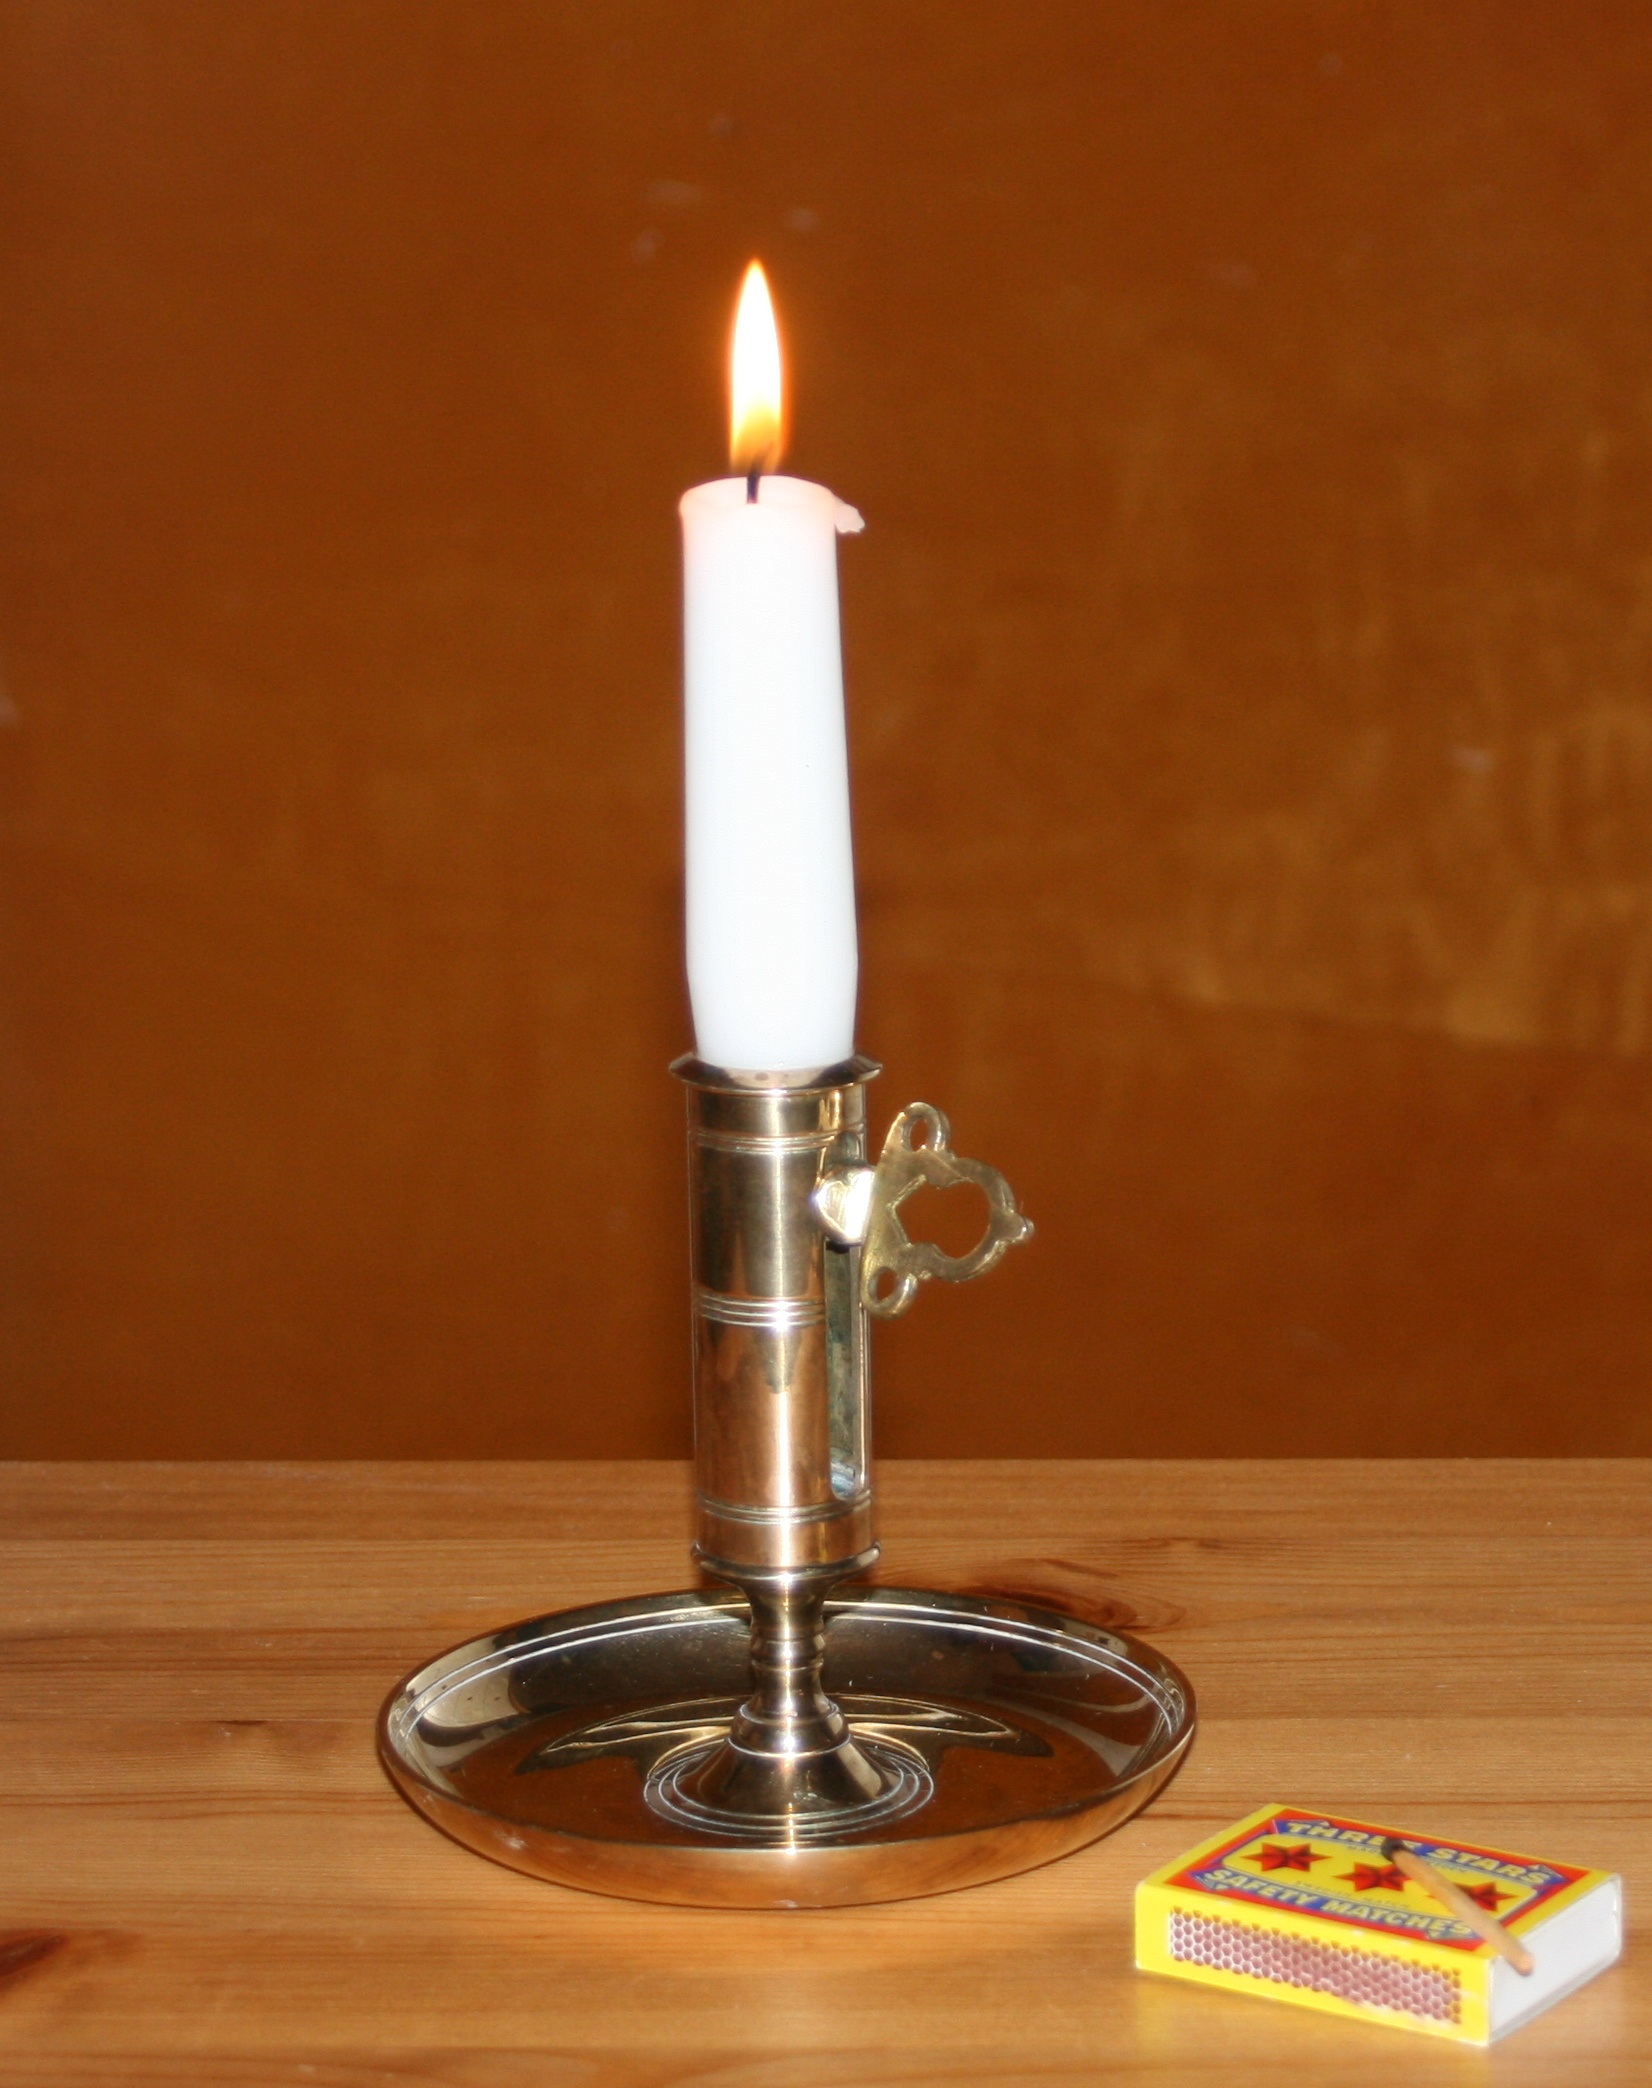 Heat Candle For Small Rooms